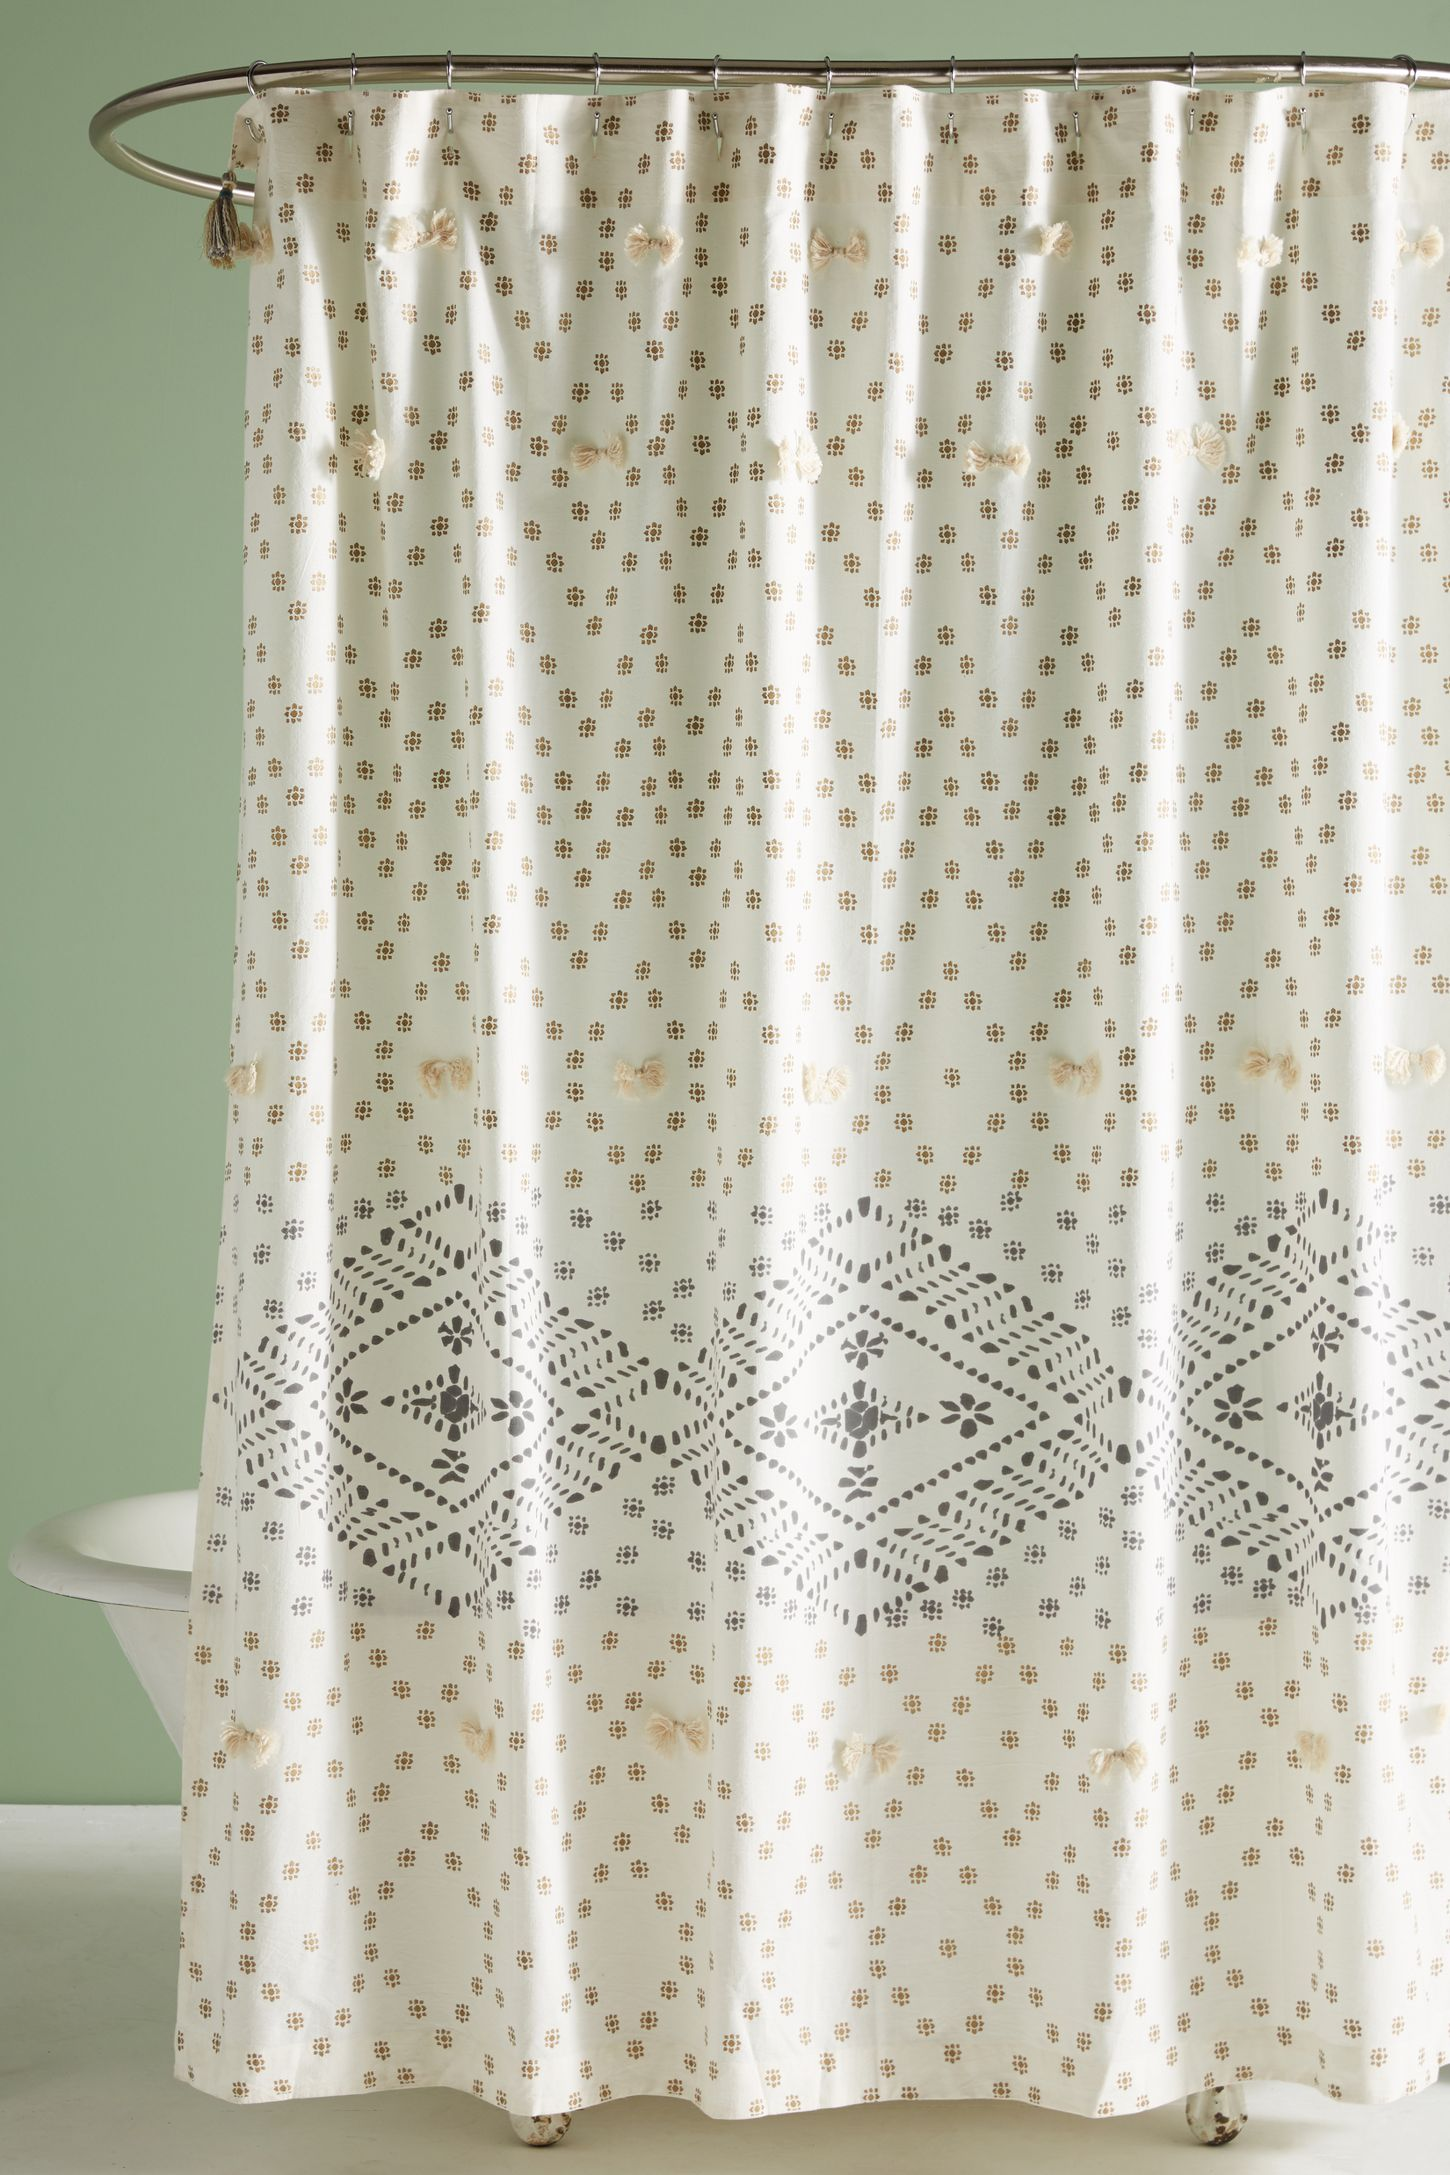 liron tufted shower curtain - Bathroom Designs With Shower Curtains